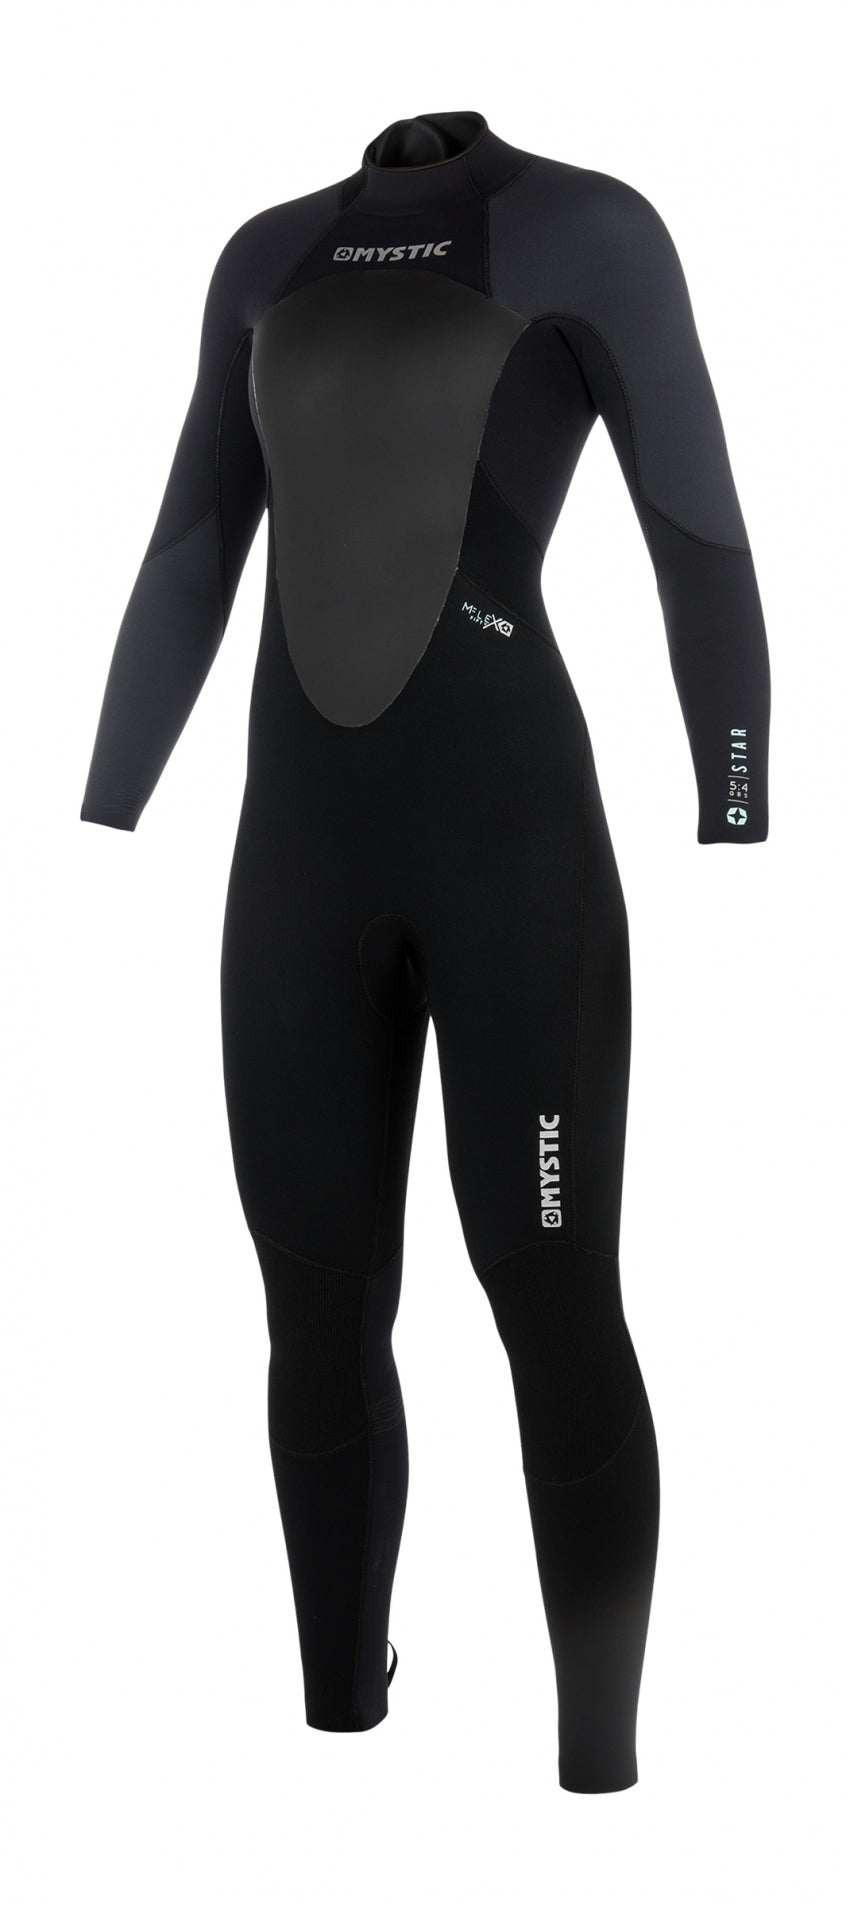 Star Fullsuit 5/4mm Bzip Women